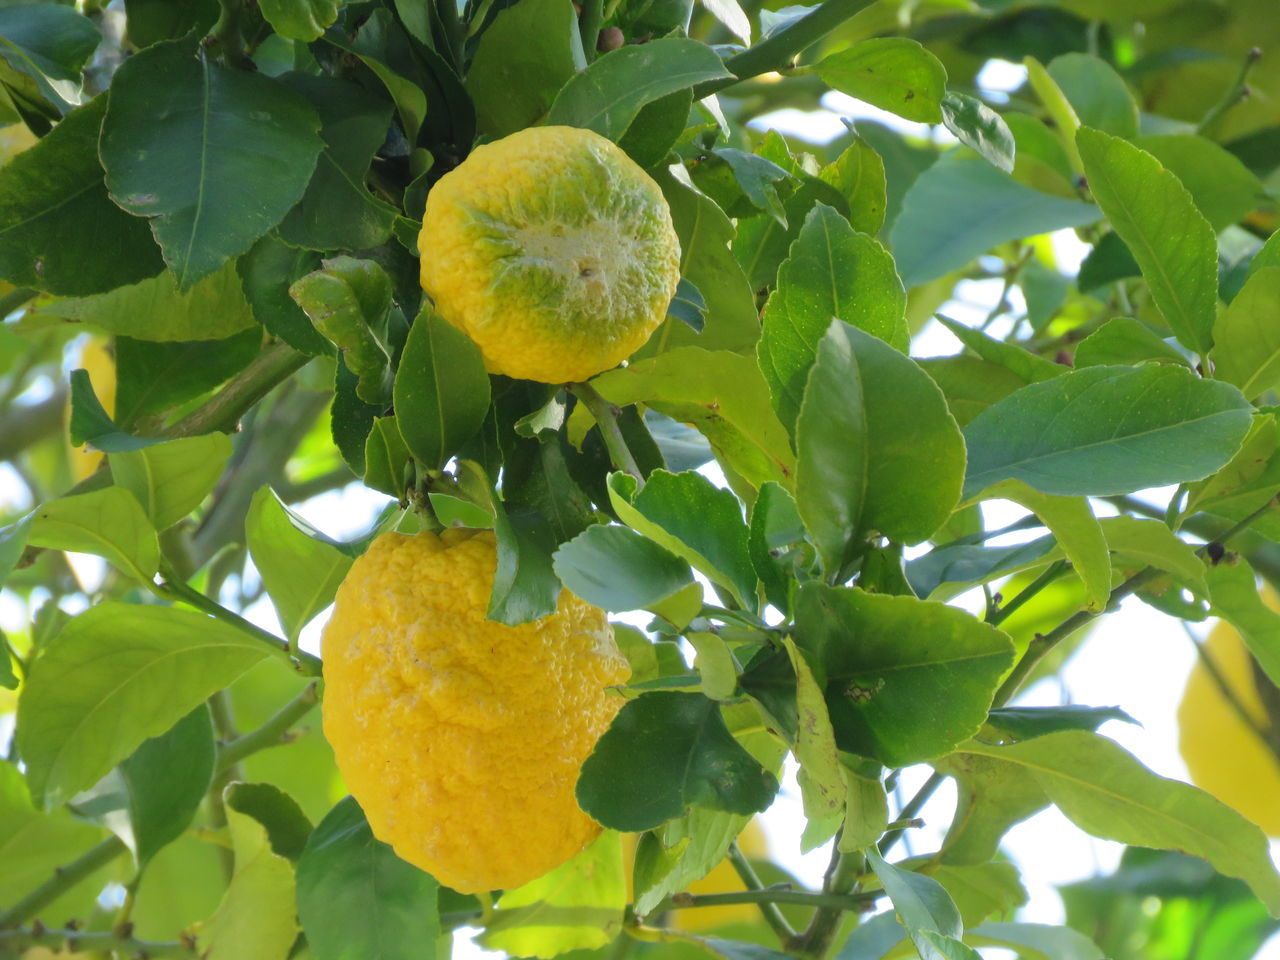 Fruit Lemon Citrus Fruit Lemon Tree Growth Leaf Nature Tree Food Freshness Green Color Close-up Food And Drink Branch Juicy Yellow Agriculture No People Healthy Eating Beauty In Nature Sunny Day Selective Focus Detail Beauty In Nature Focus On Foreground